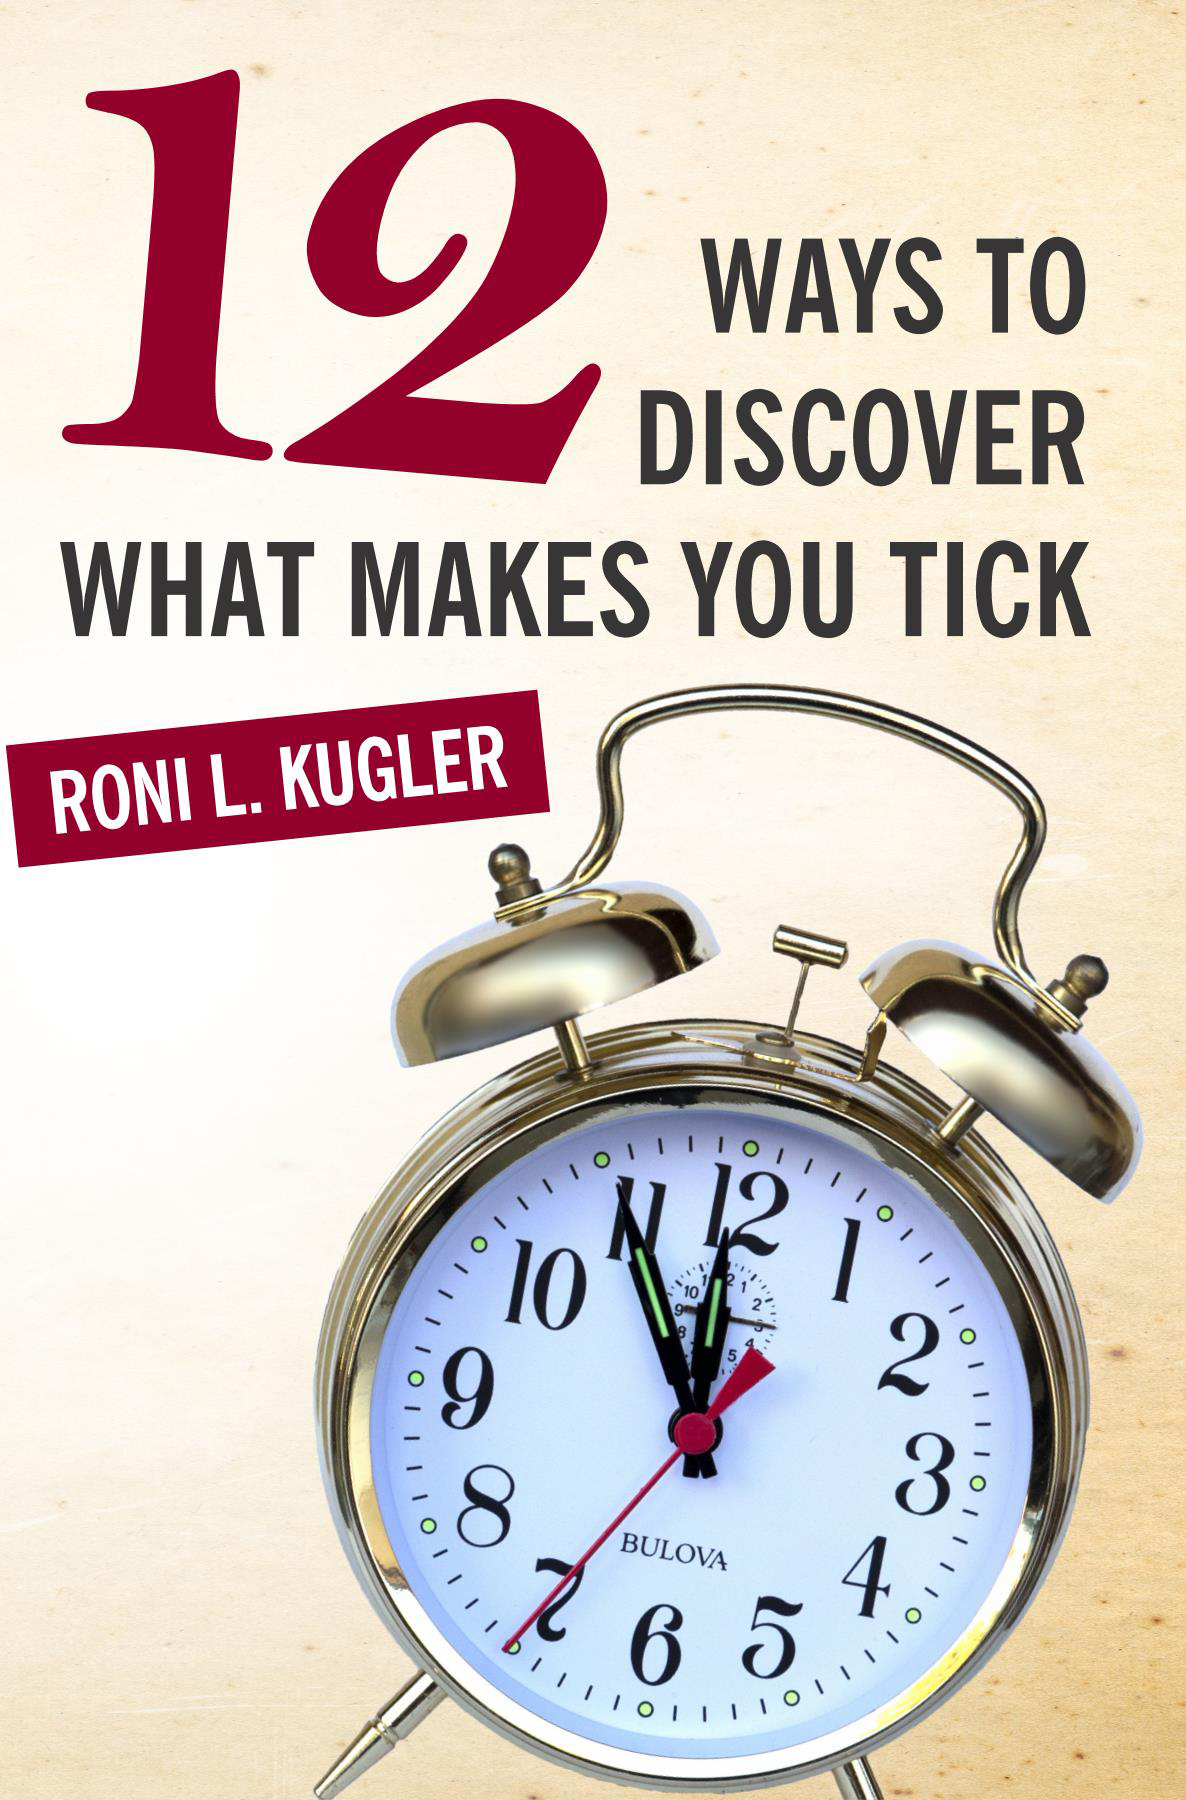 Roni L. Kugler, 12 Ways to Discover What Makes You Tick